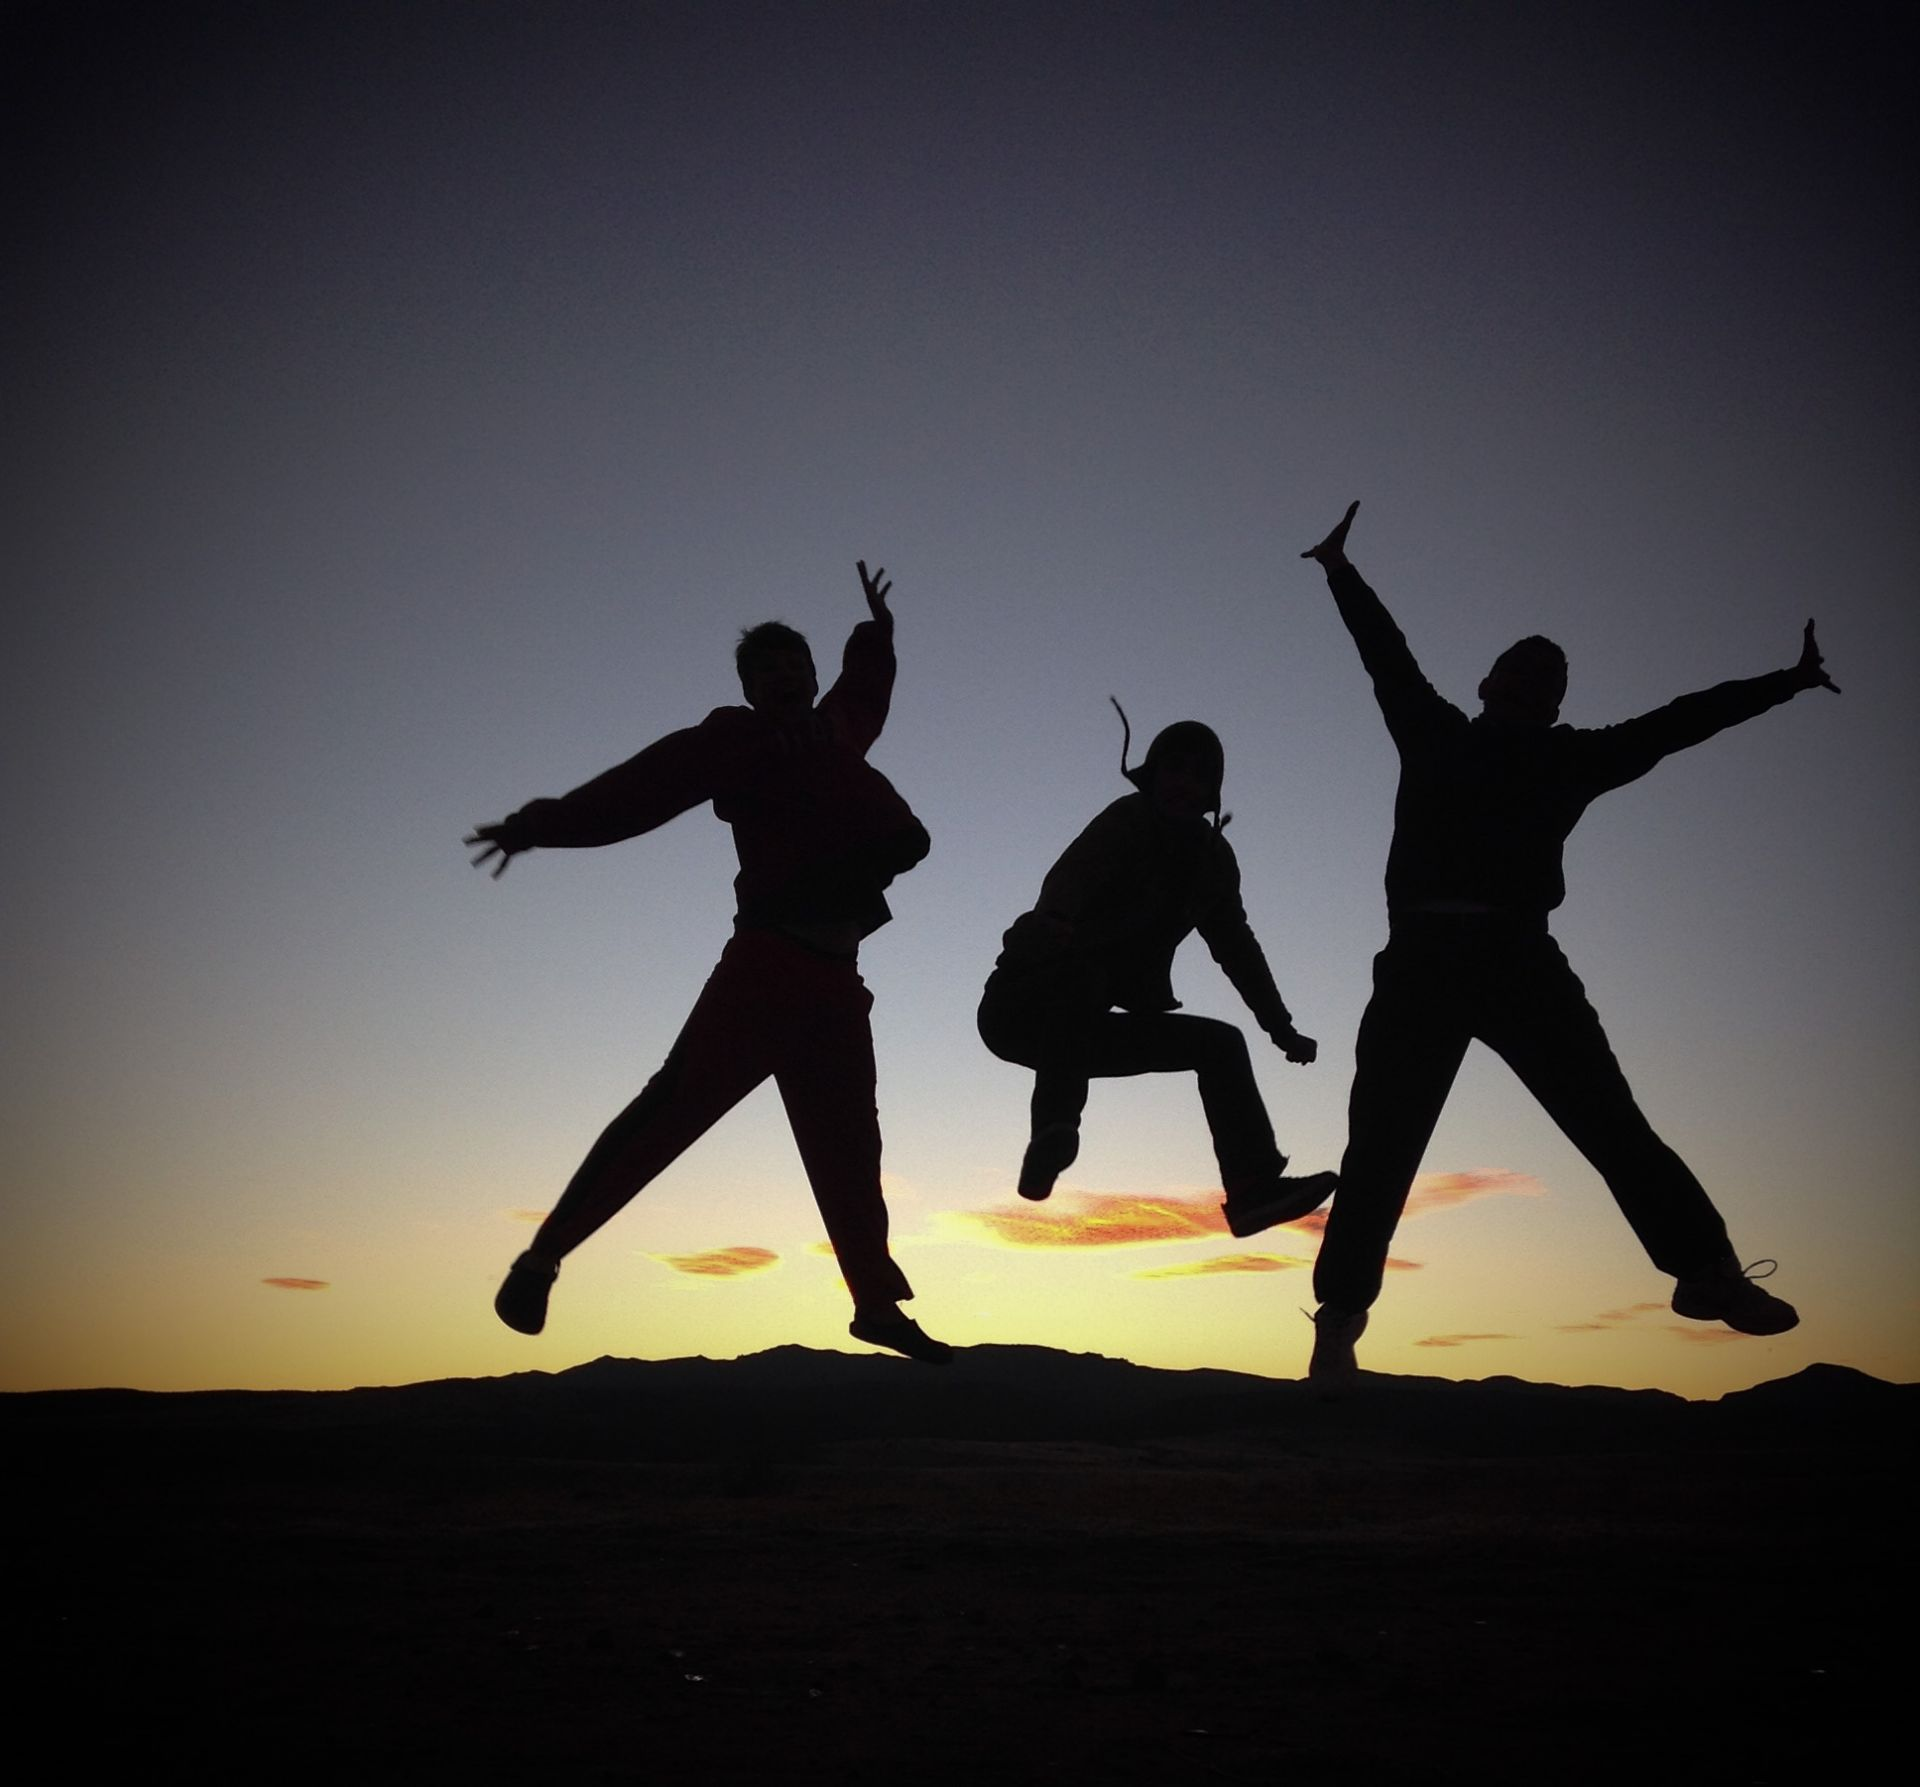 friendship, friend, skip, jump, jumping, to become night, sunset, silhouette